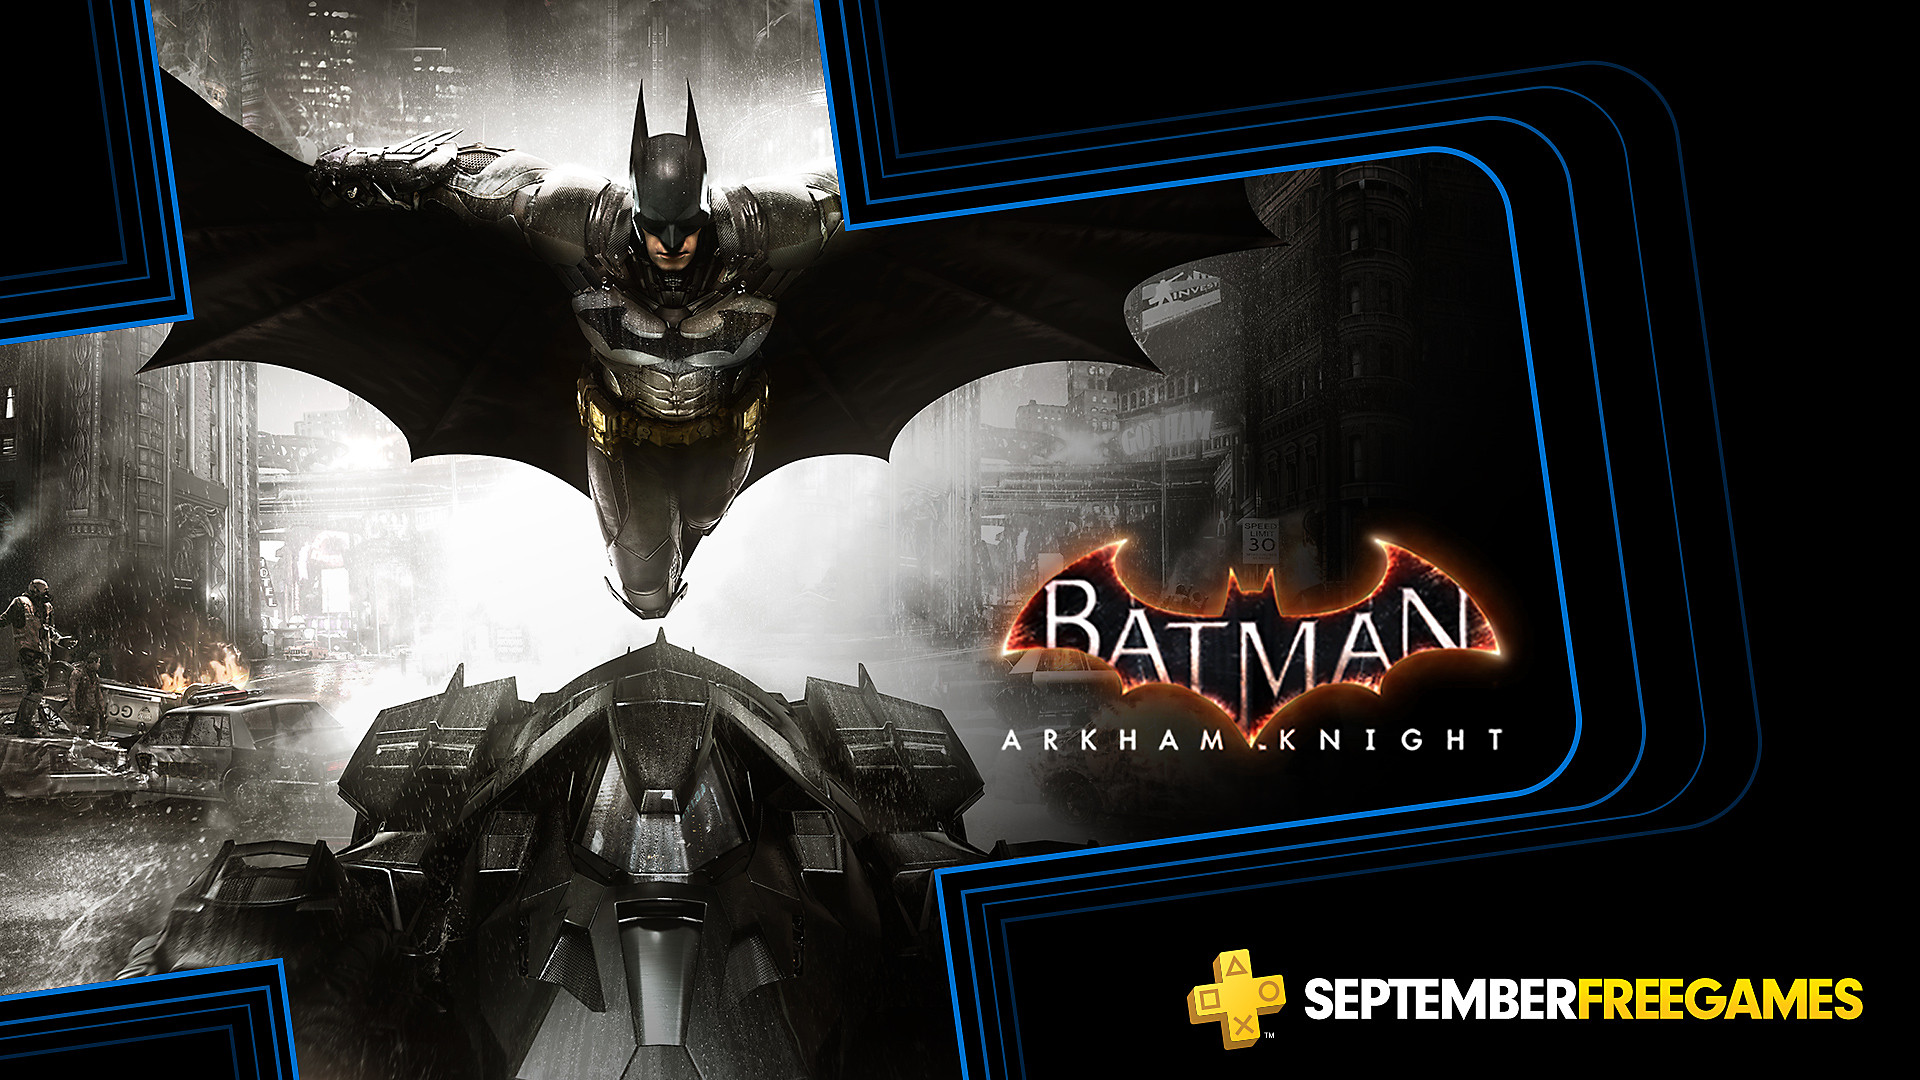 Click here to get Batman Arkham Knight free from the PlayStation Store for PlayStation Plus members